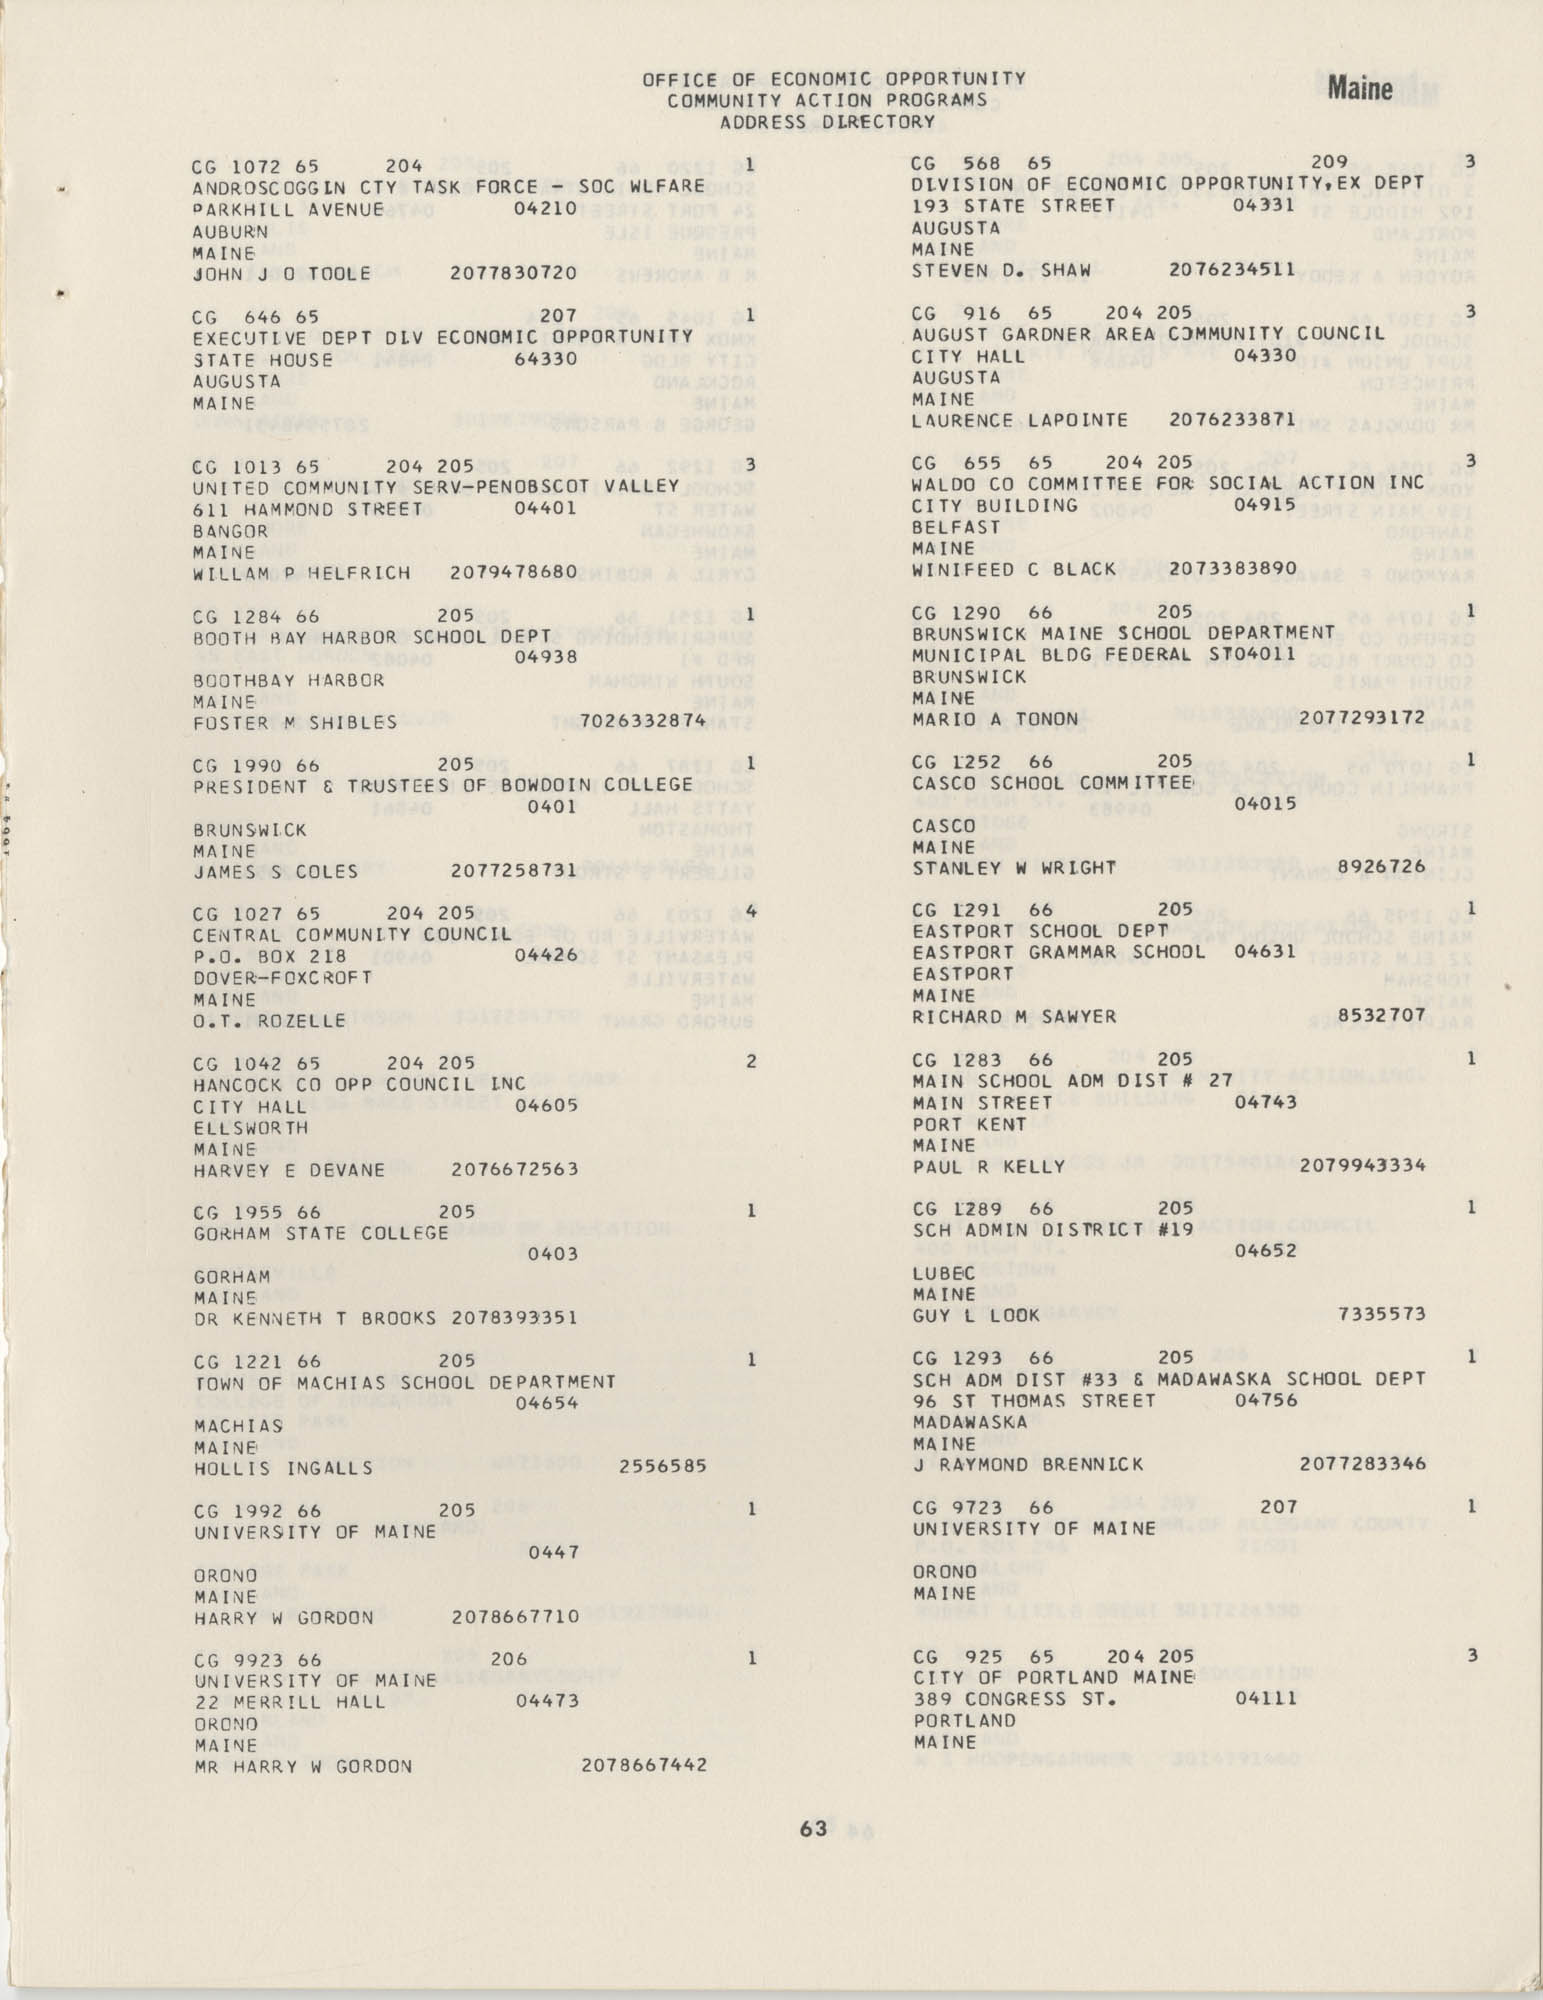 Community Action Programs Directory, June 15, 1966, Page 63